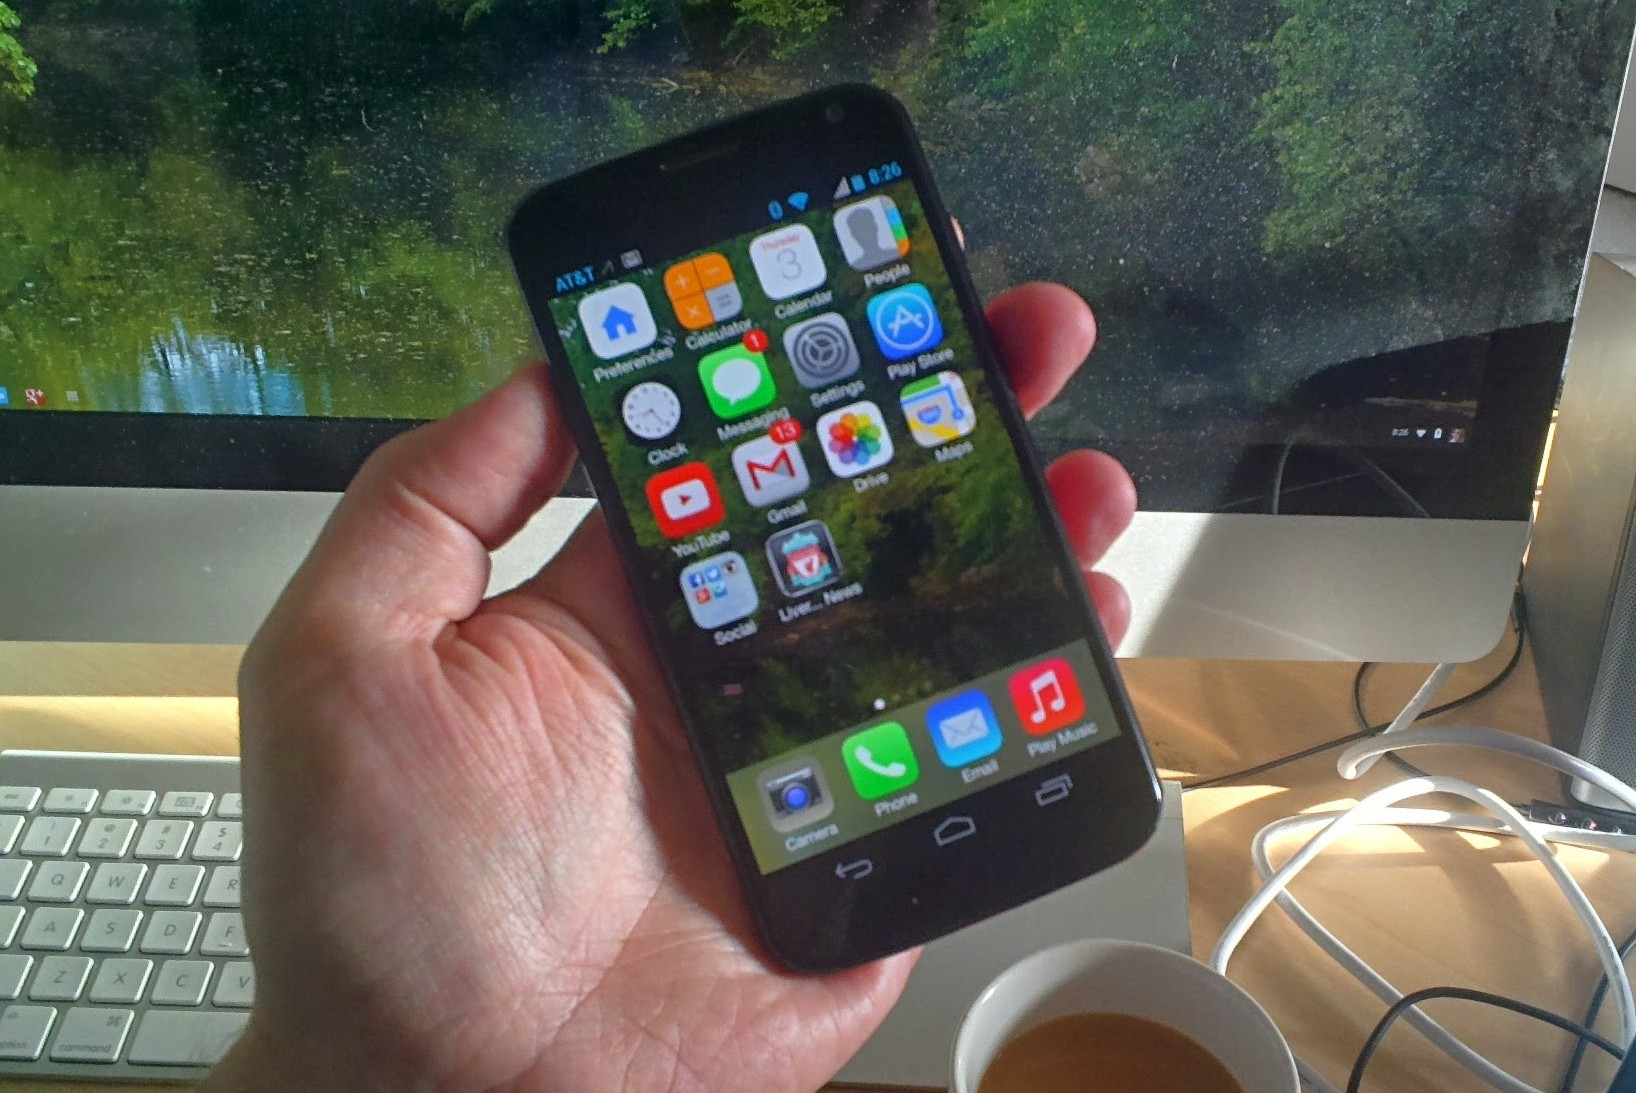 iOS 7 on Android